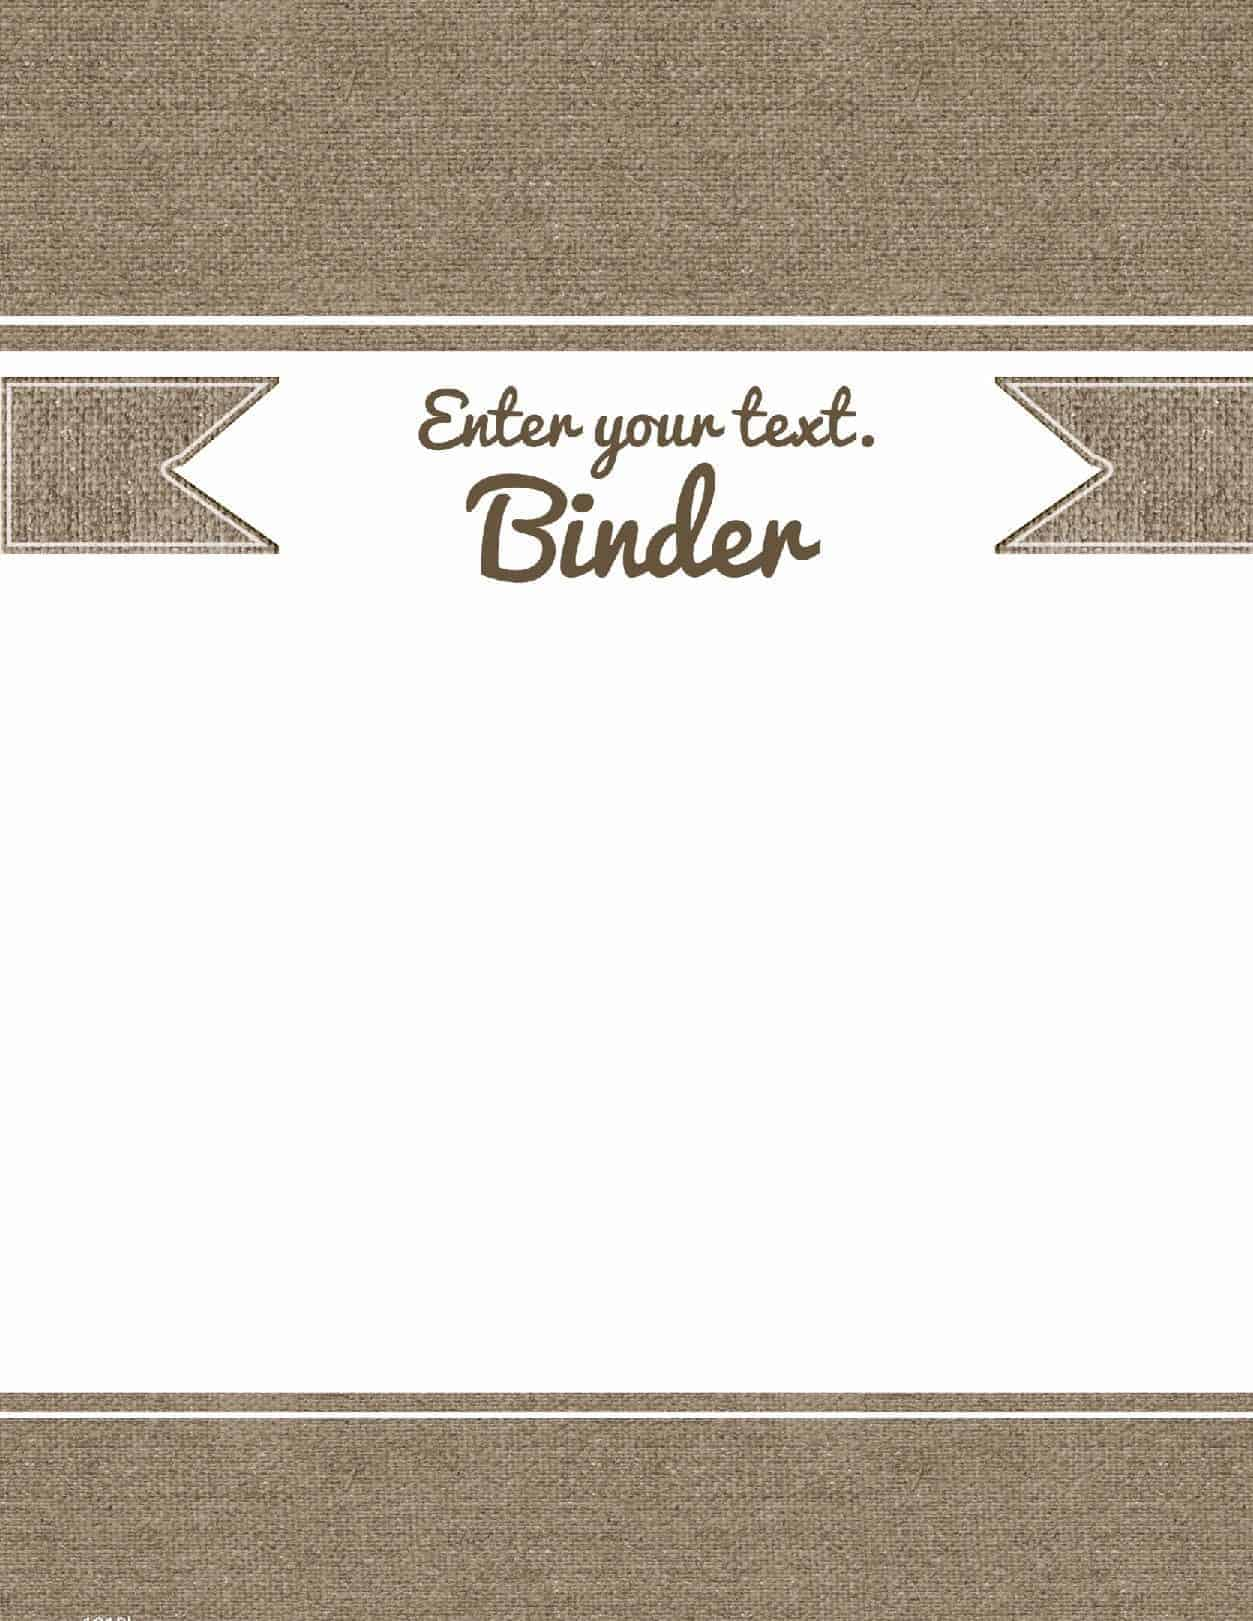 image relating to Binder Cover Printable titled No cost Binder Address Templates Customise On line Print at